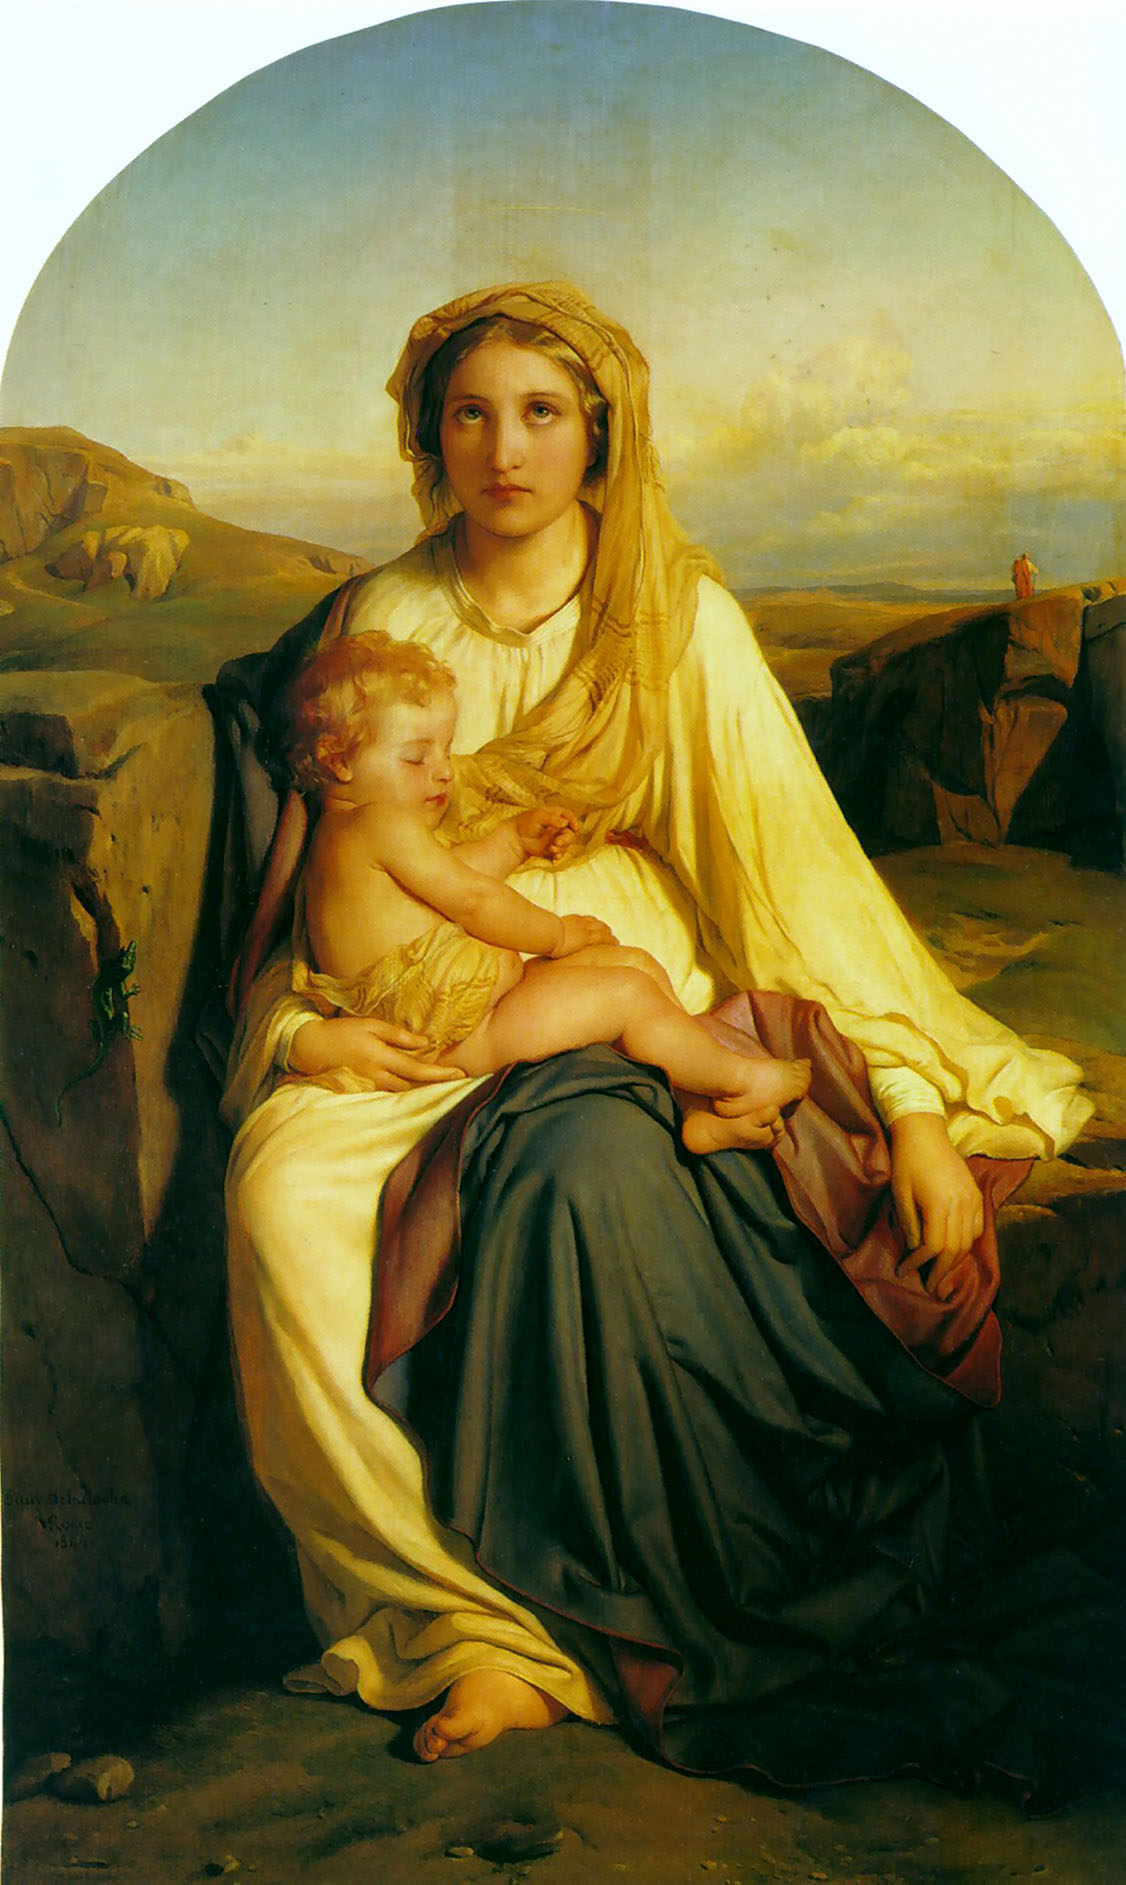 Virgin and Child :: Paul Delaroche - Woman and child in painting and art ôîòî